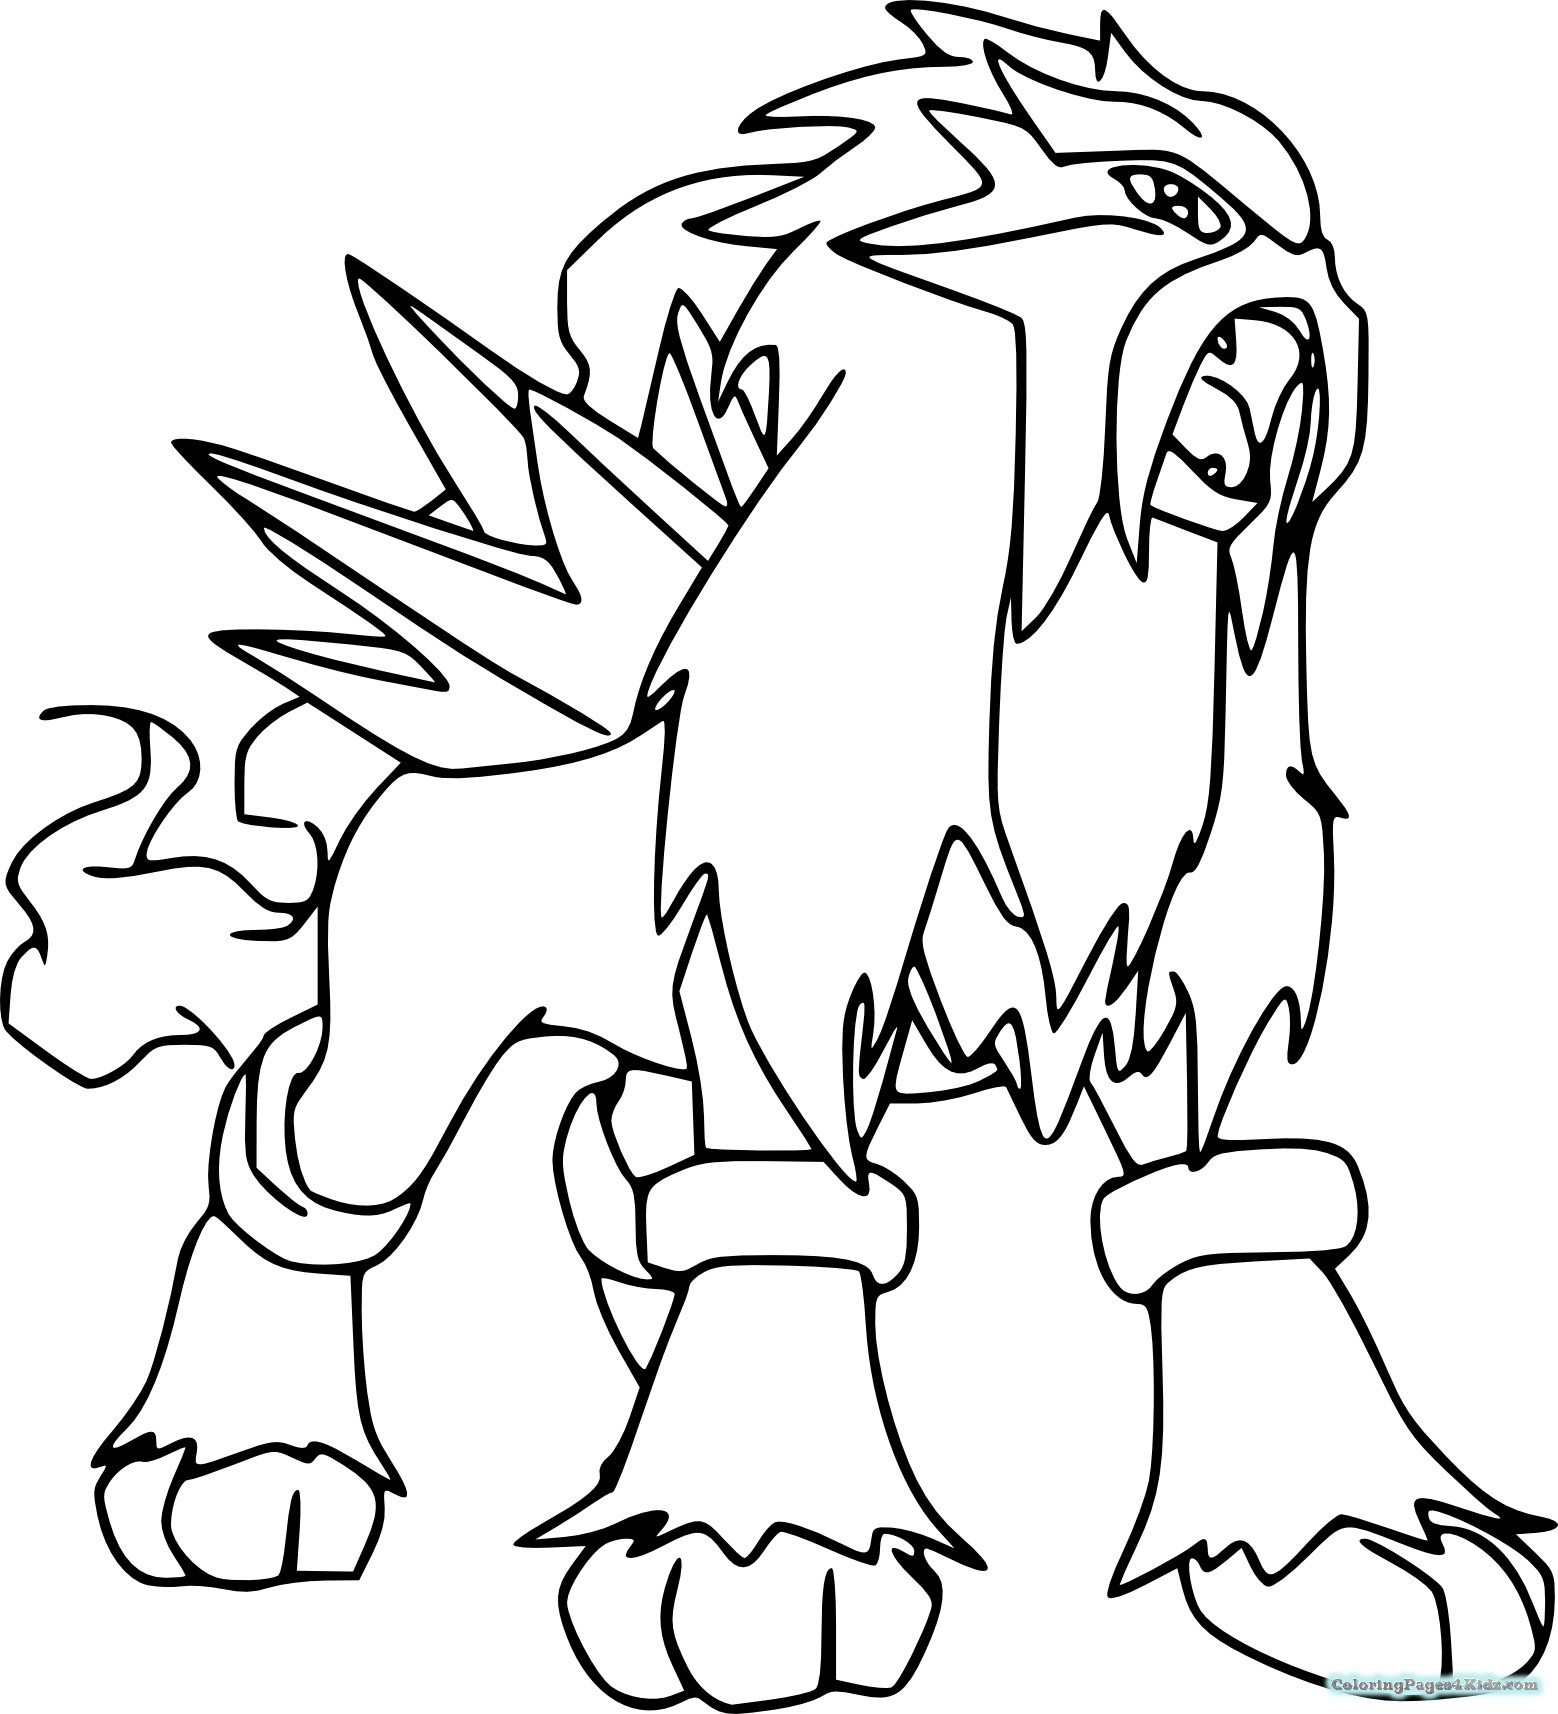 coloring pictures of pokemon best pokemon coloring pages for kids and adults collection of pokemon pictures coloring